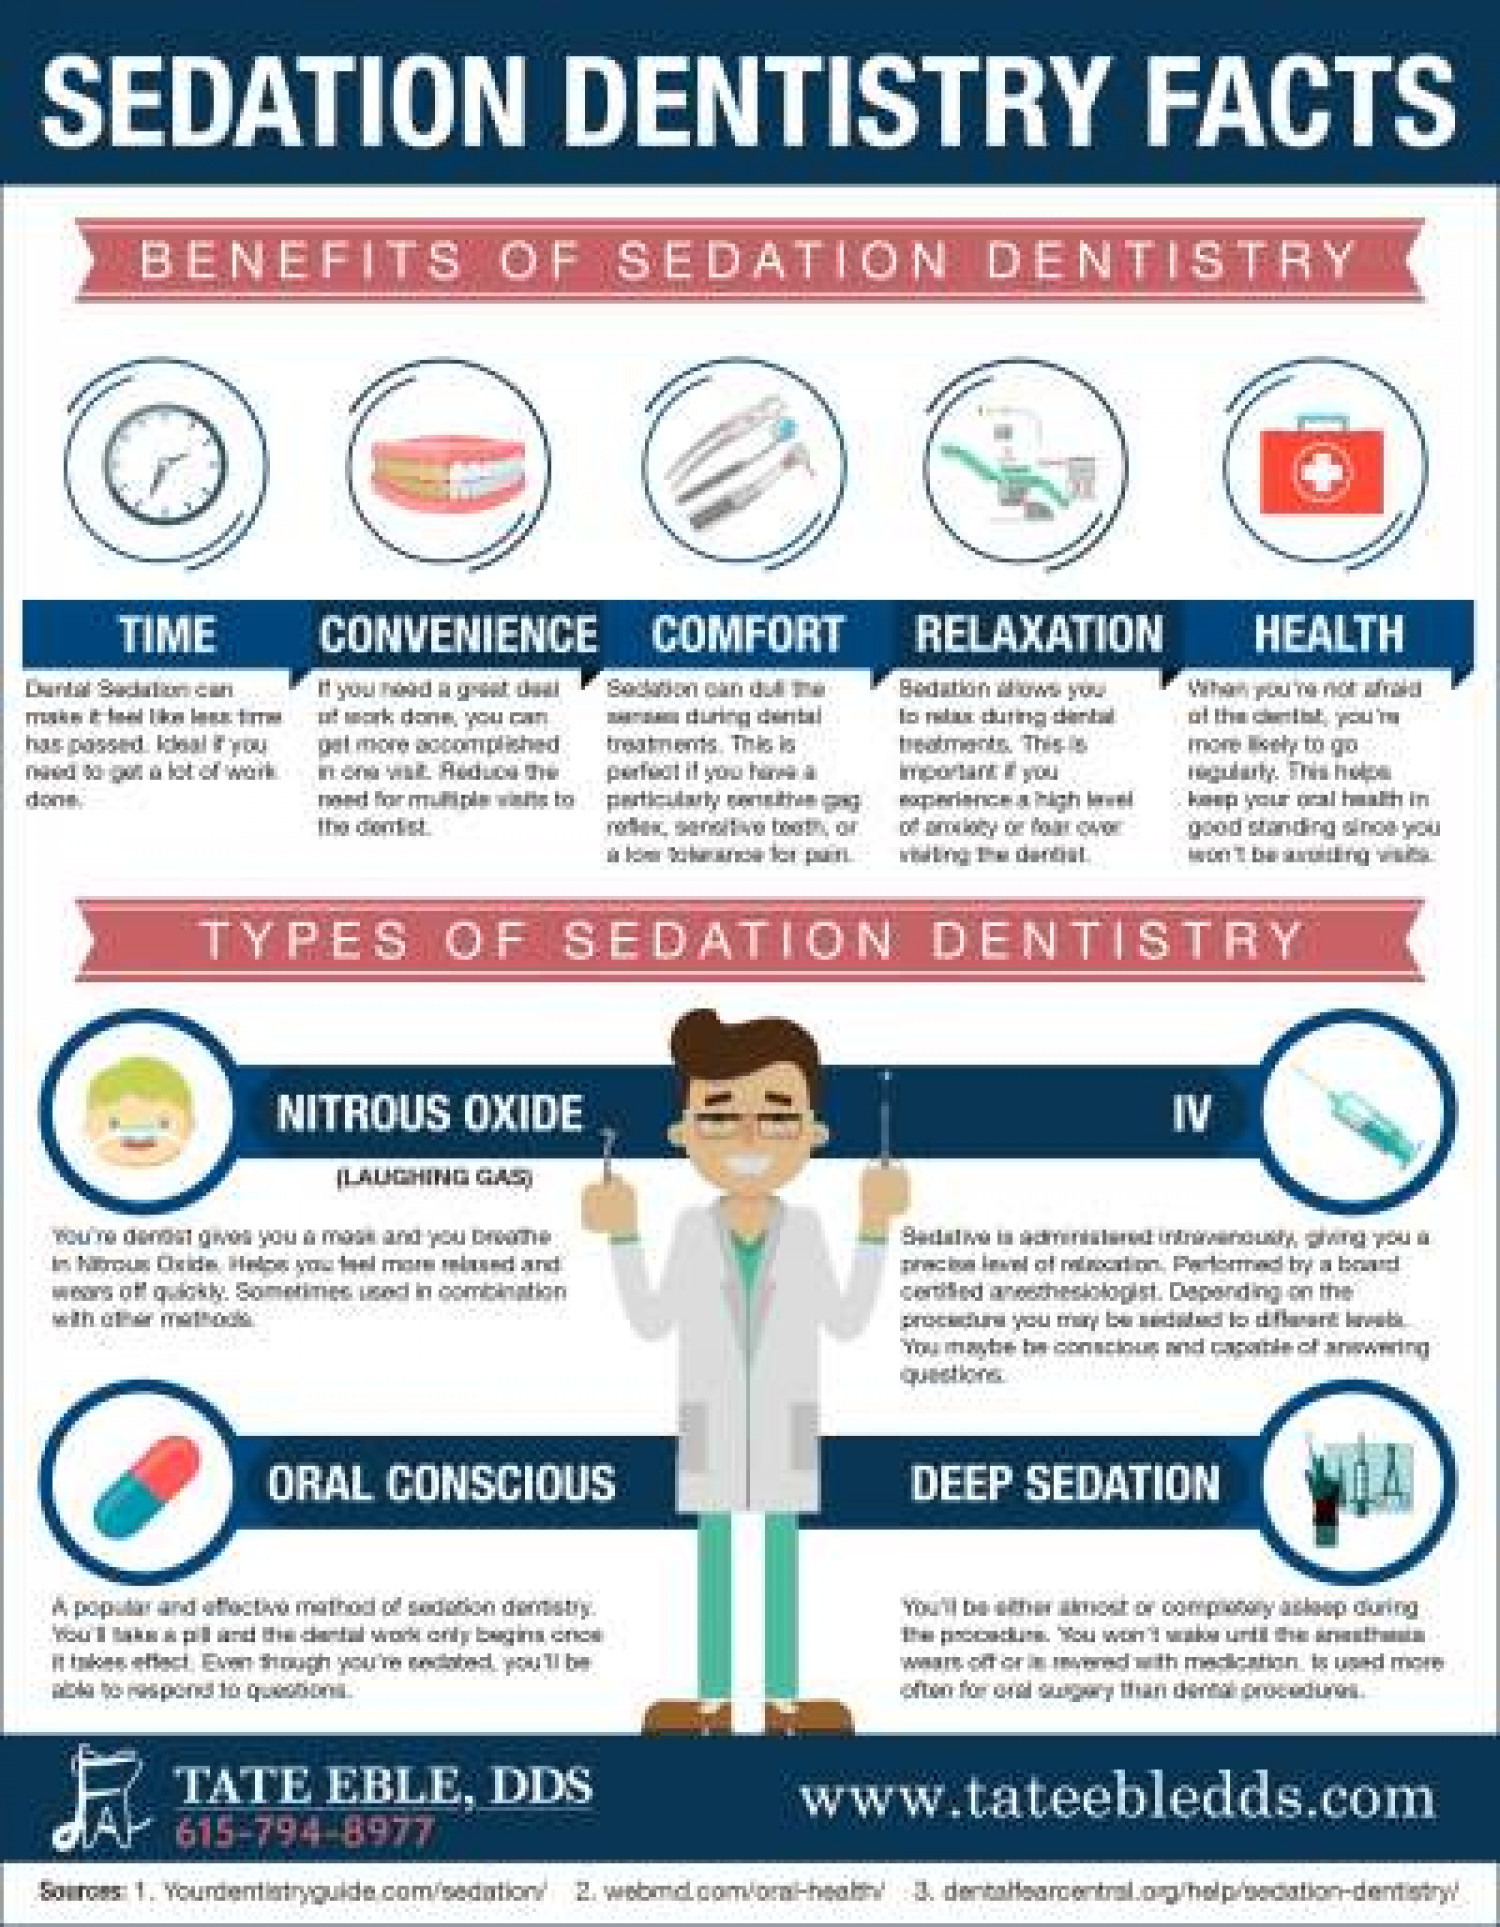 Sedation Dentistry Facts (Infographic) Infographic